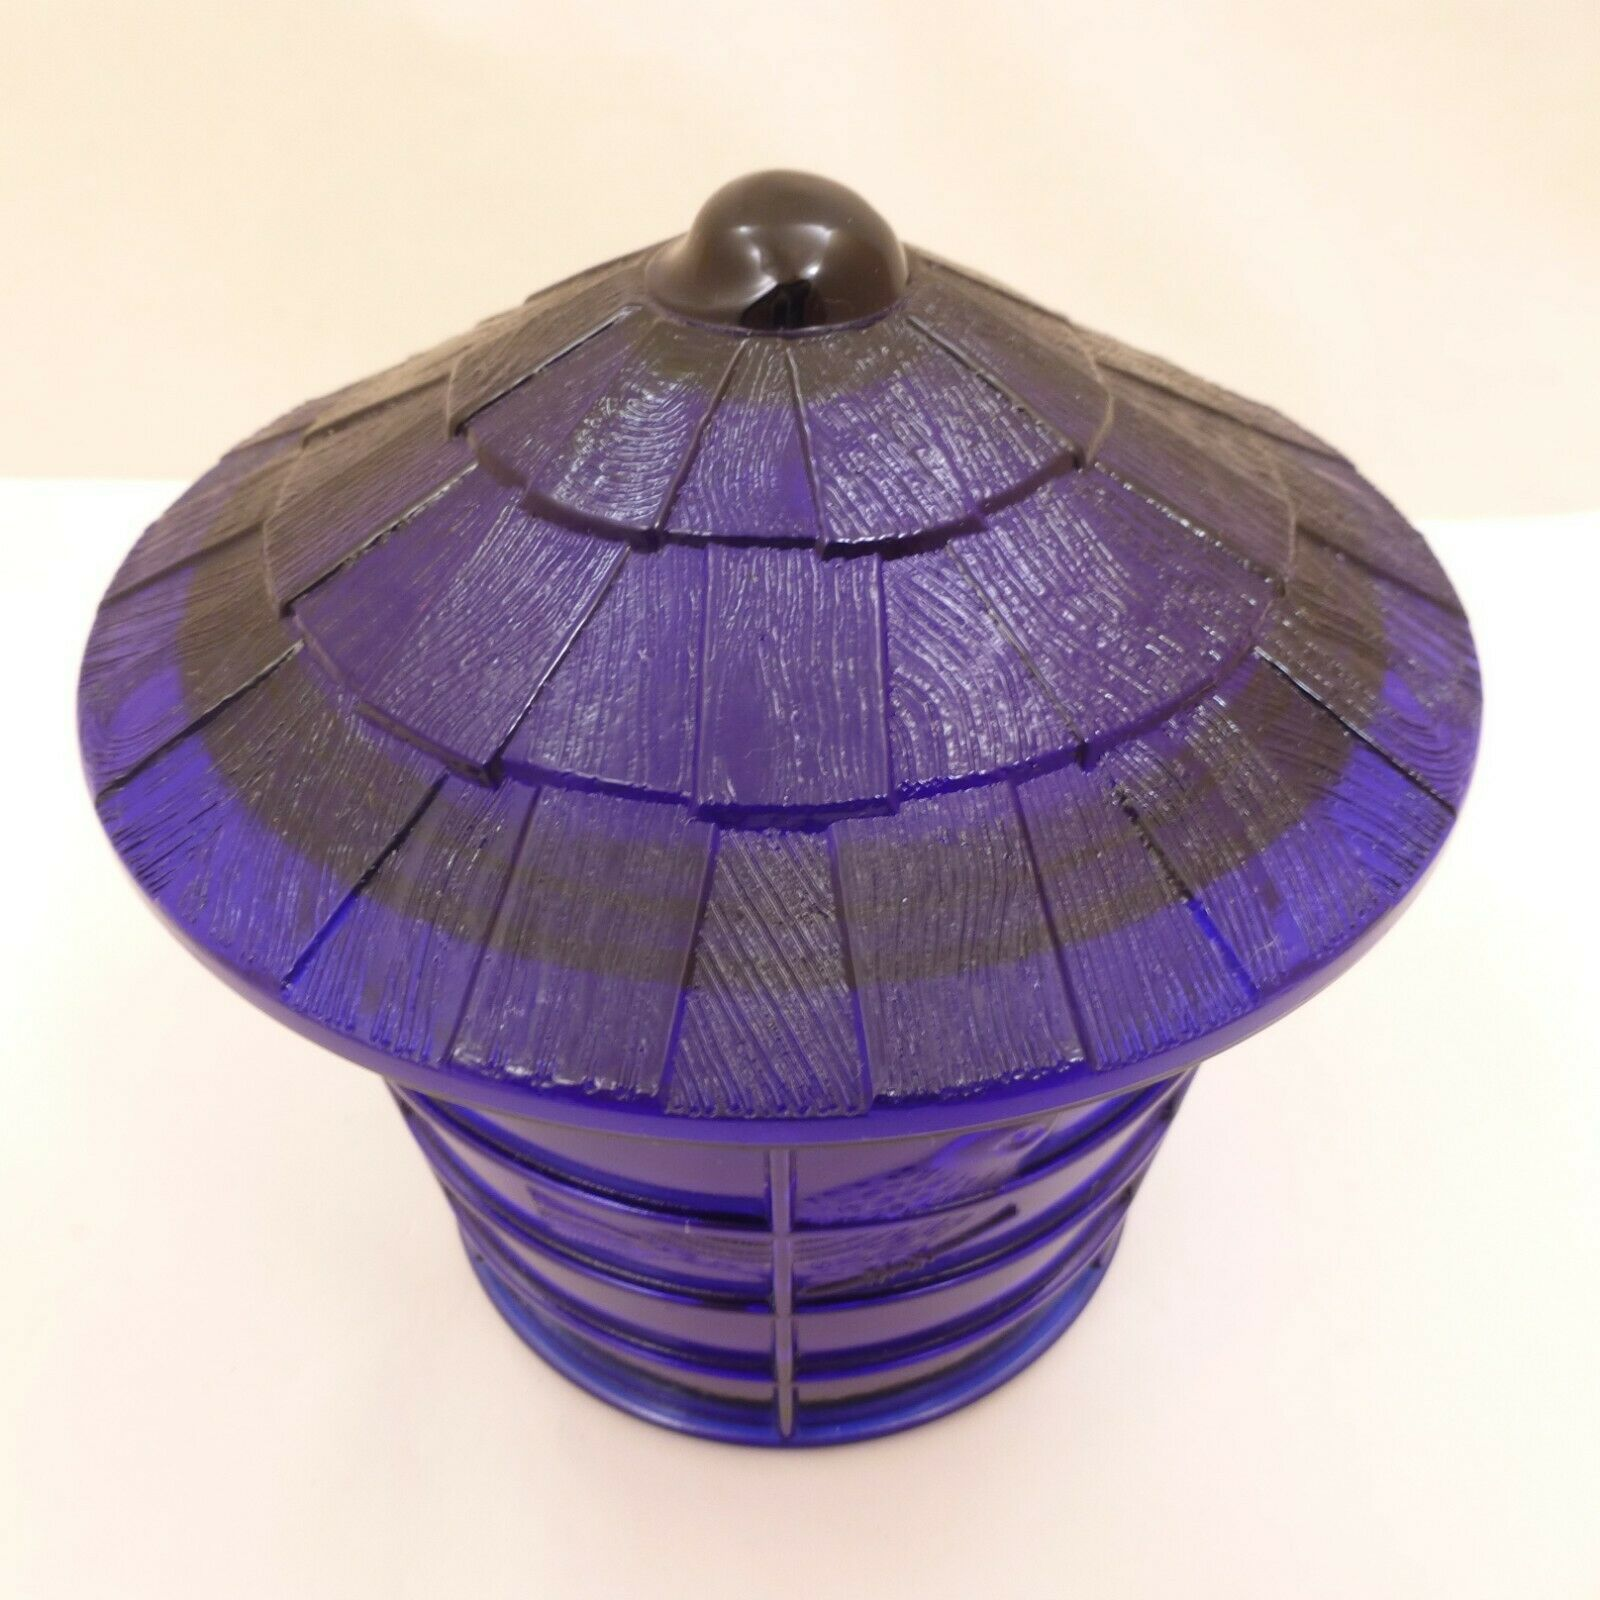 NOS Vintage IMPERIAL COBALT BLUE Glass BIRD CAGE Covered JAR Canister SUMMIT image 6